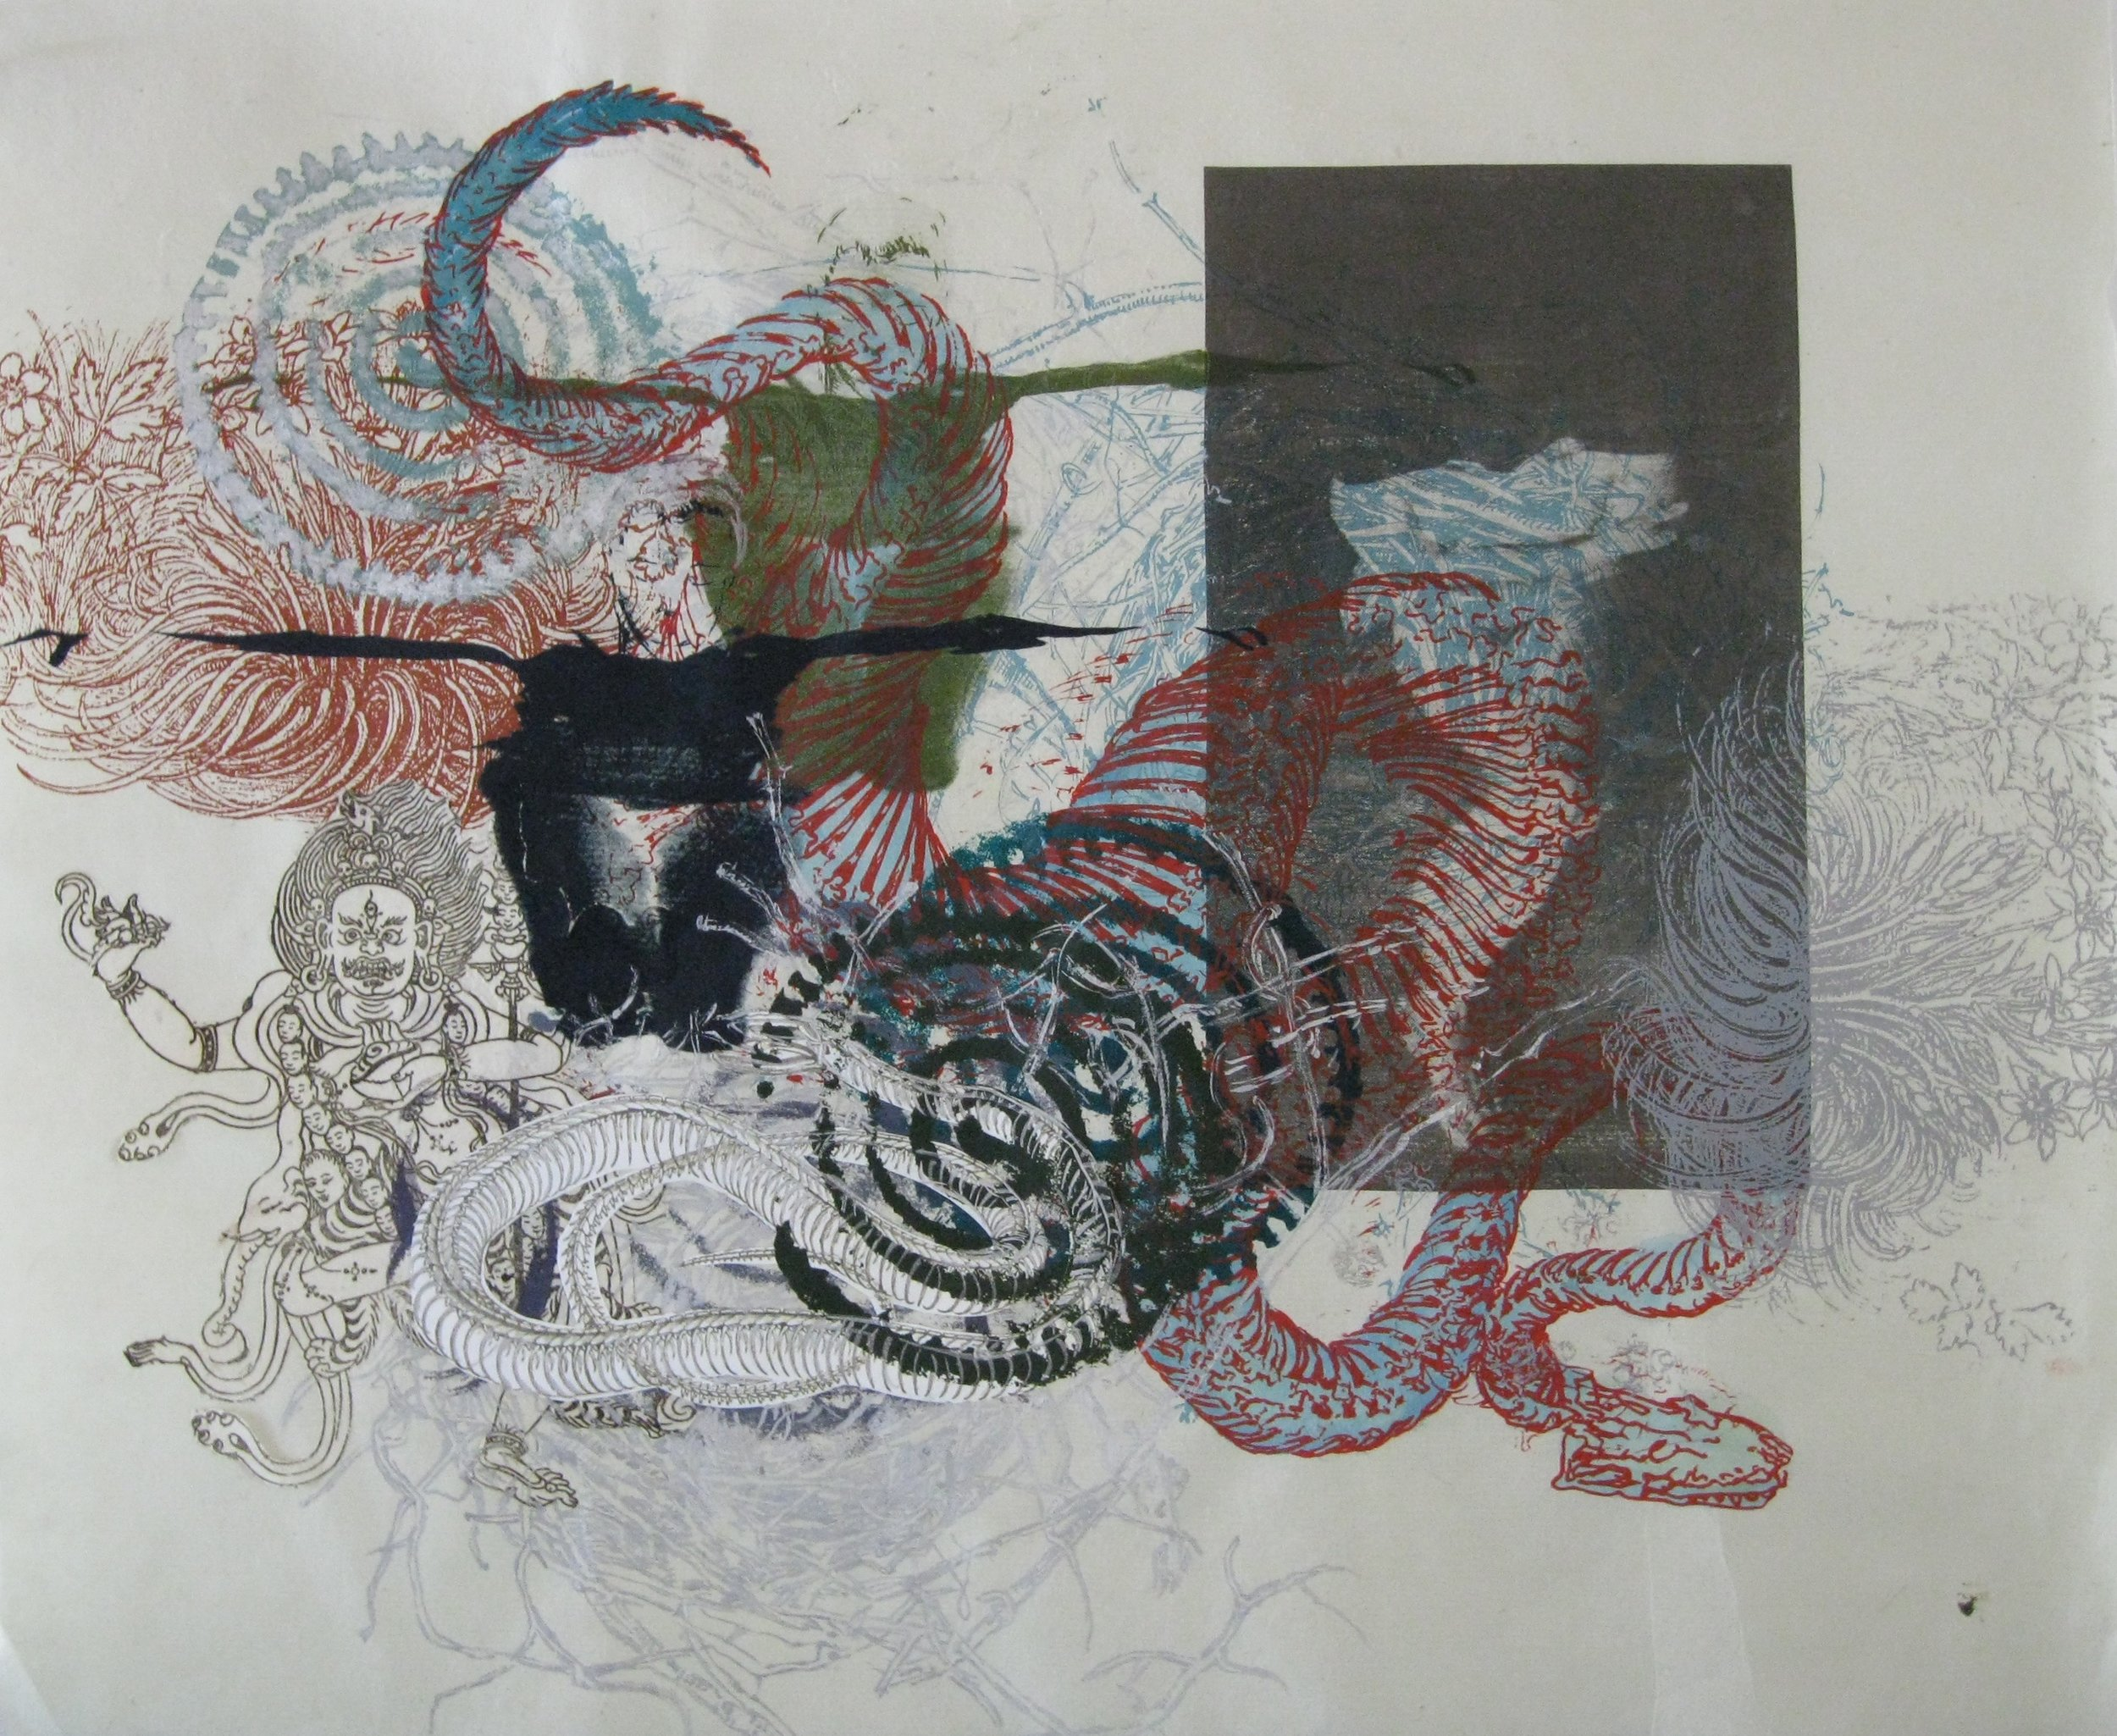 Snakedance 1, 2015, Silkscreen, Cyanotype, Found Paper, Hand Drawing,  24 x 19